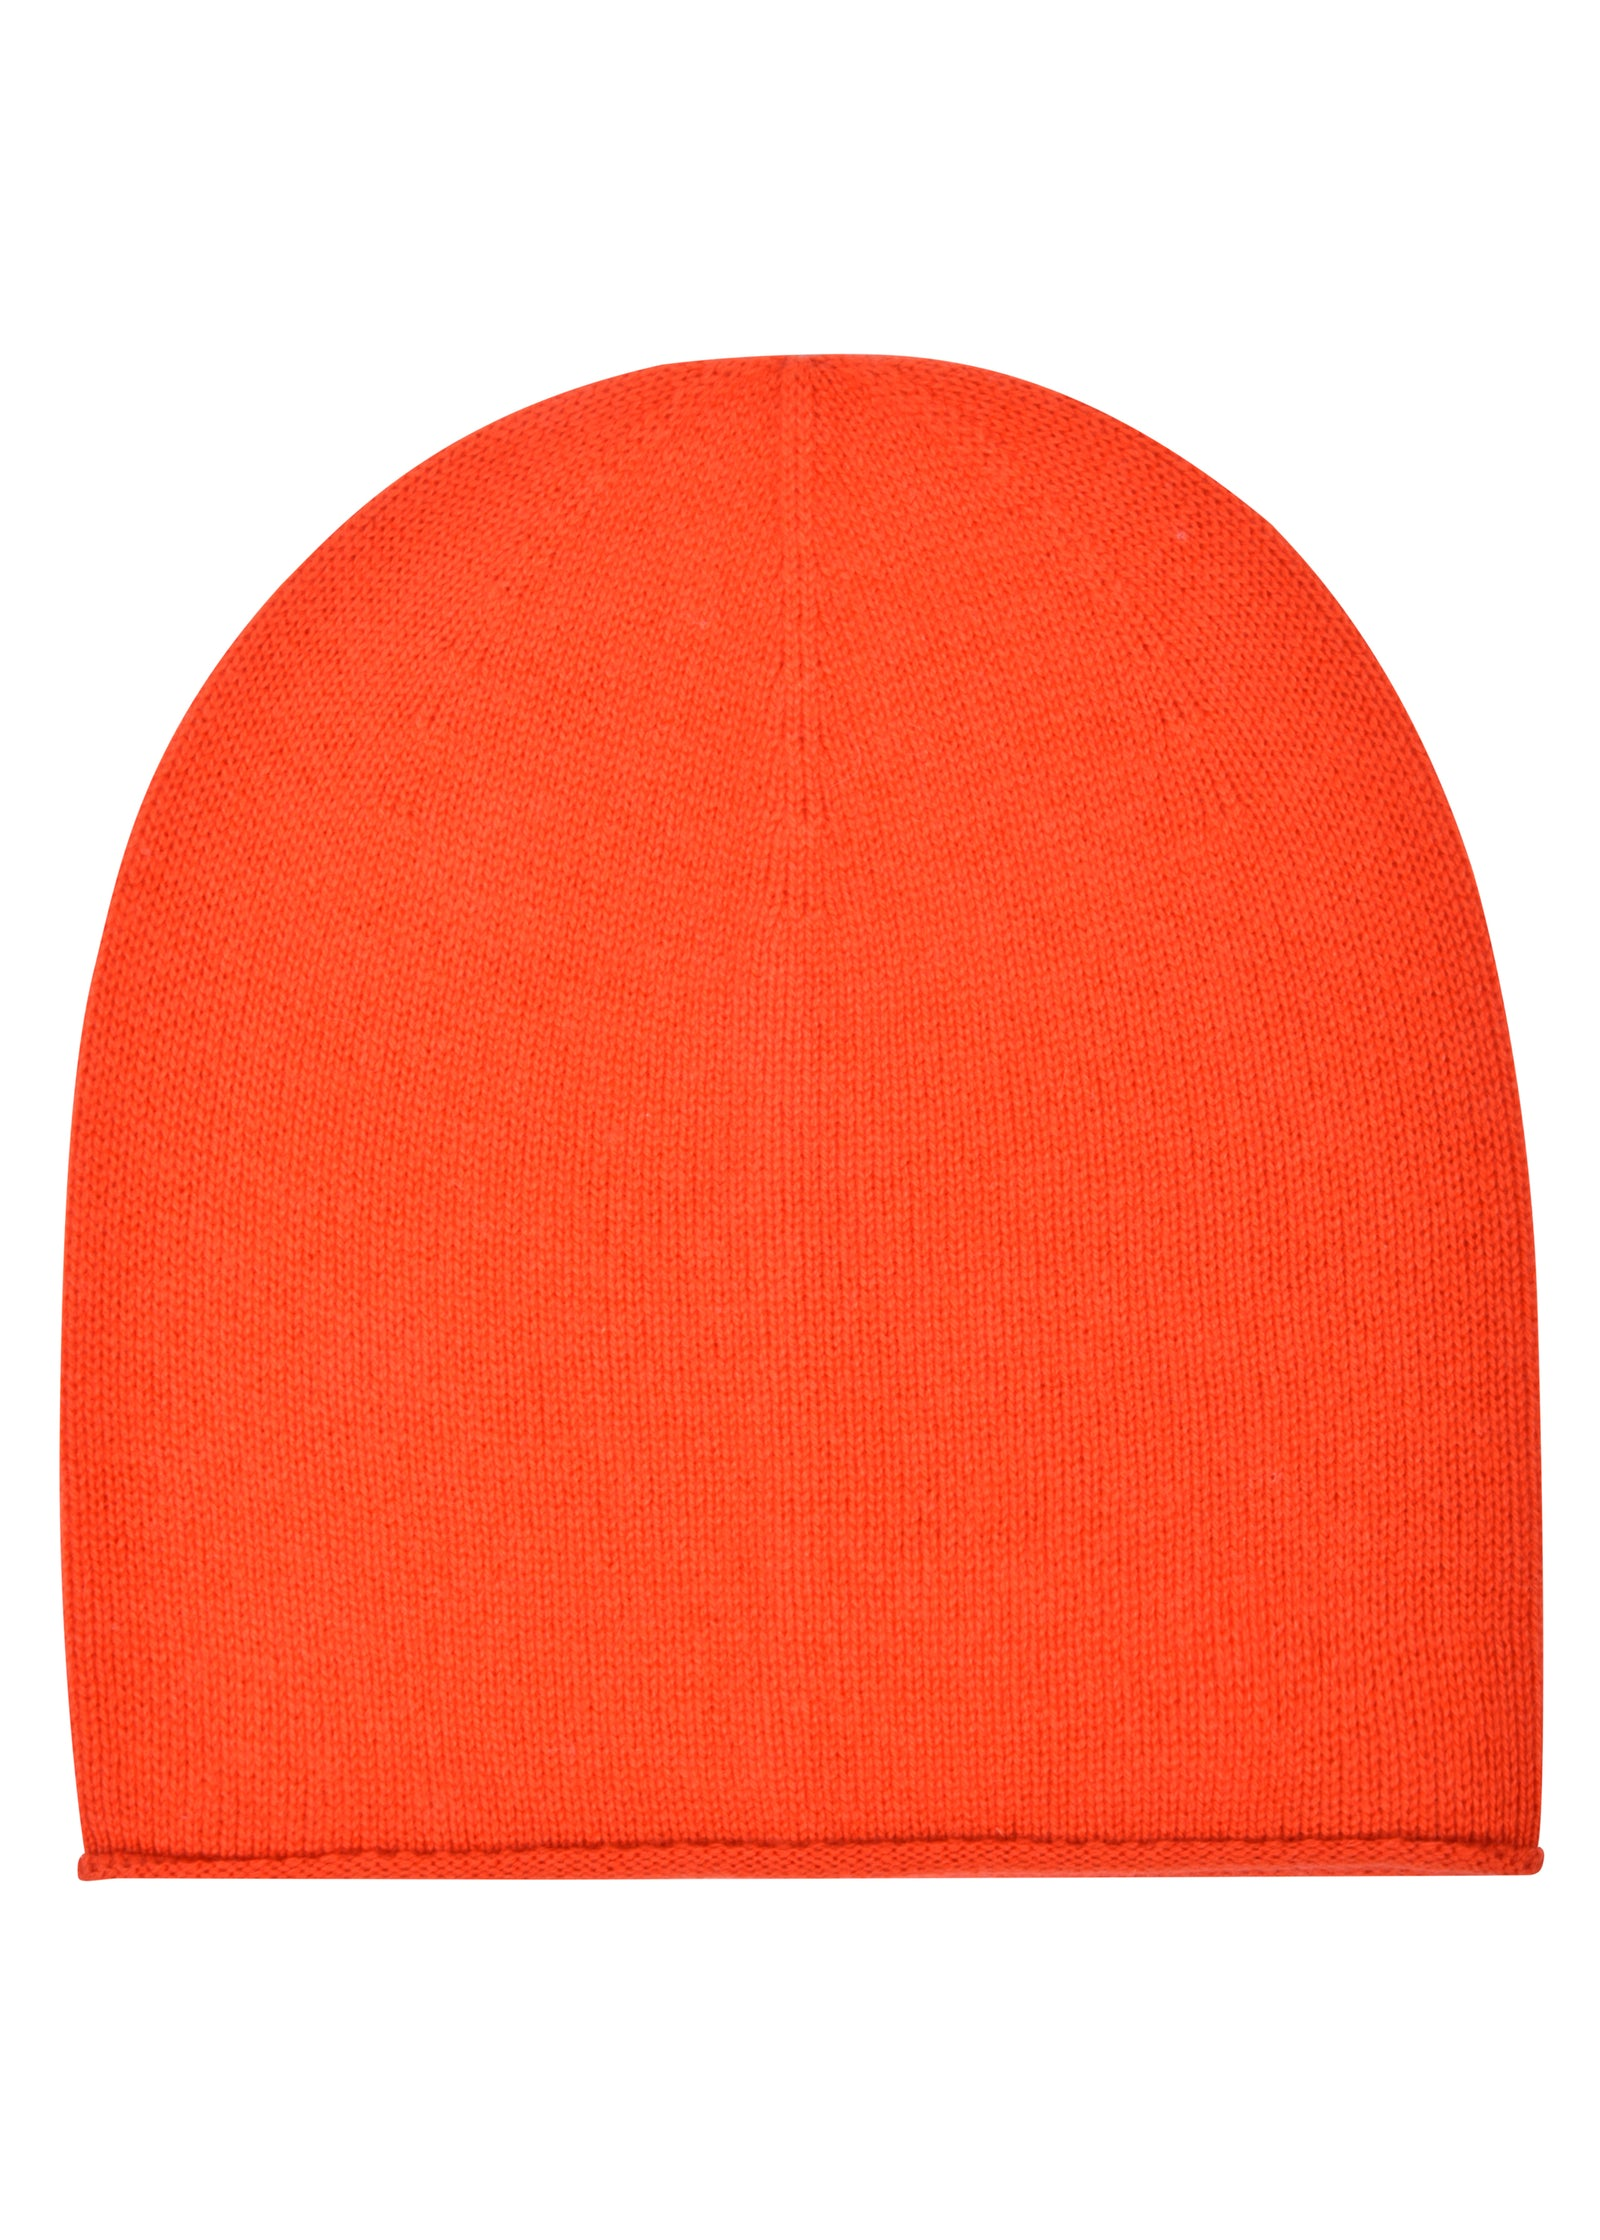 womens orange cashmere slouch hat